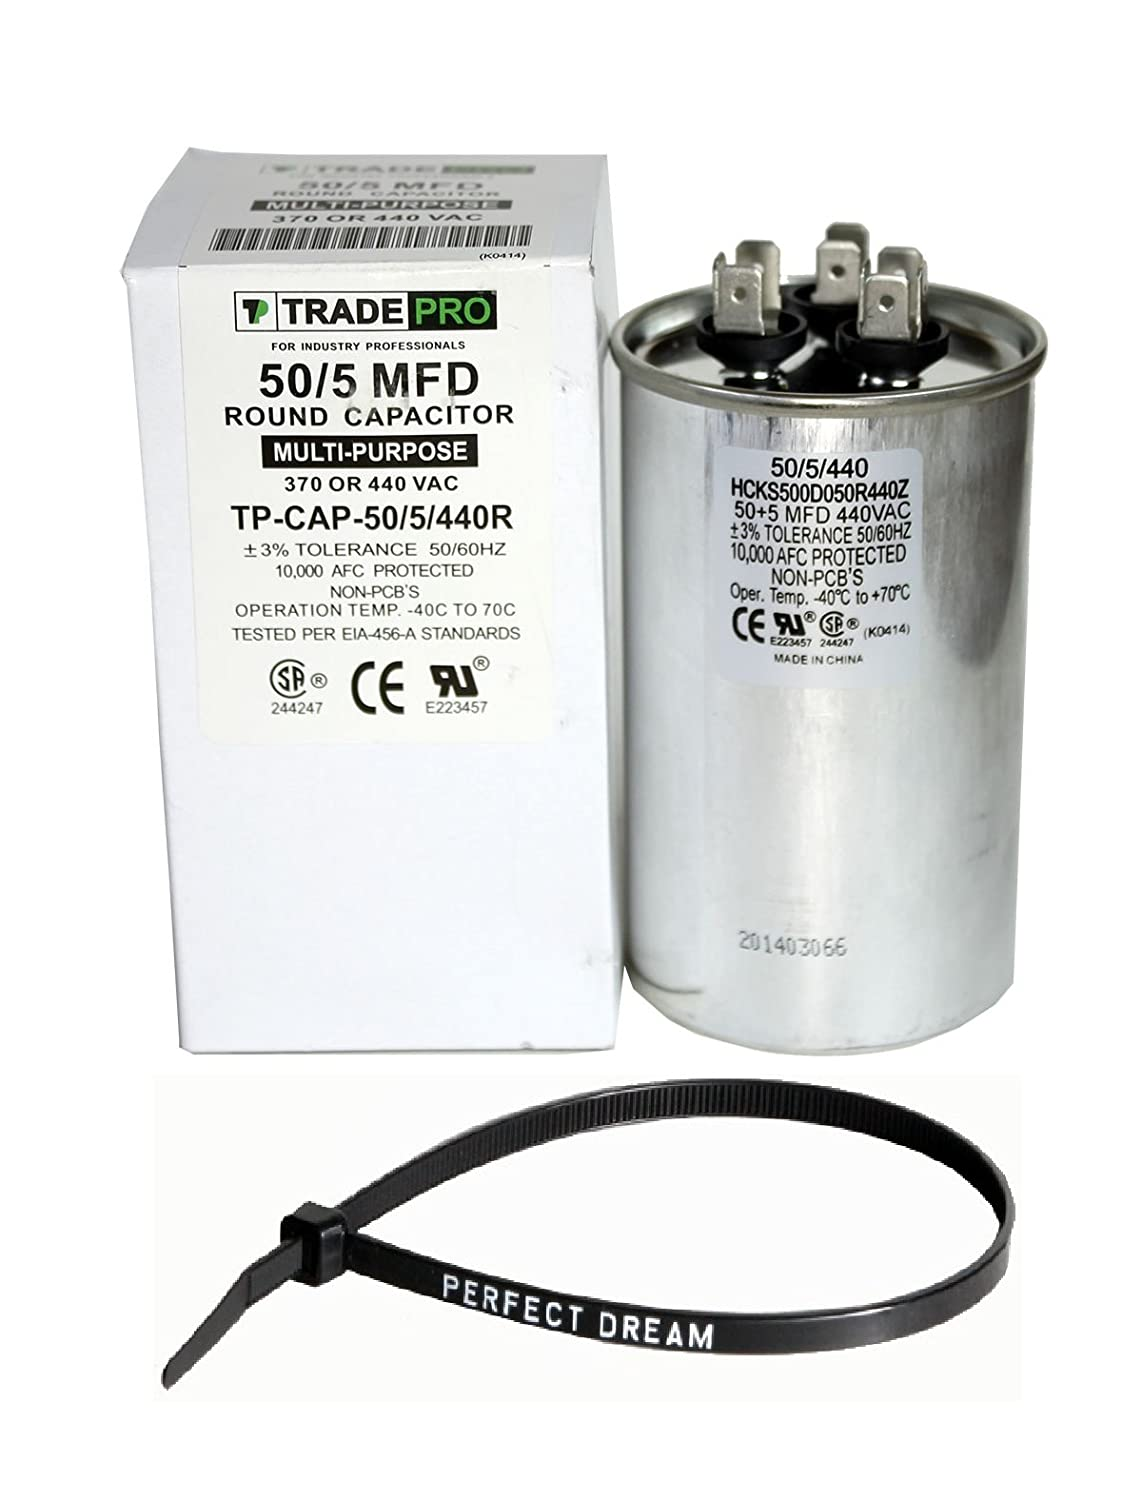 TradePro 50+5 uf MFD 370 or 440 Volt Dual Run Round Capacitor Bundle  TP-CAP-50/5/440R Condenser Straight Cool/Heat Pump Air Conditioner and Zip  Tie: ...